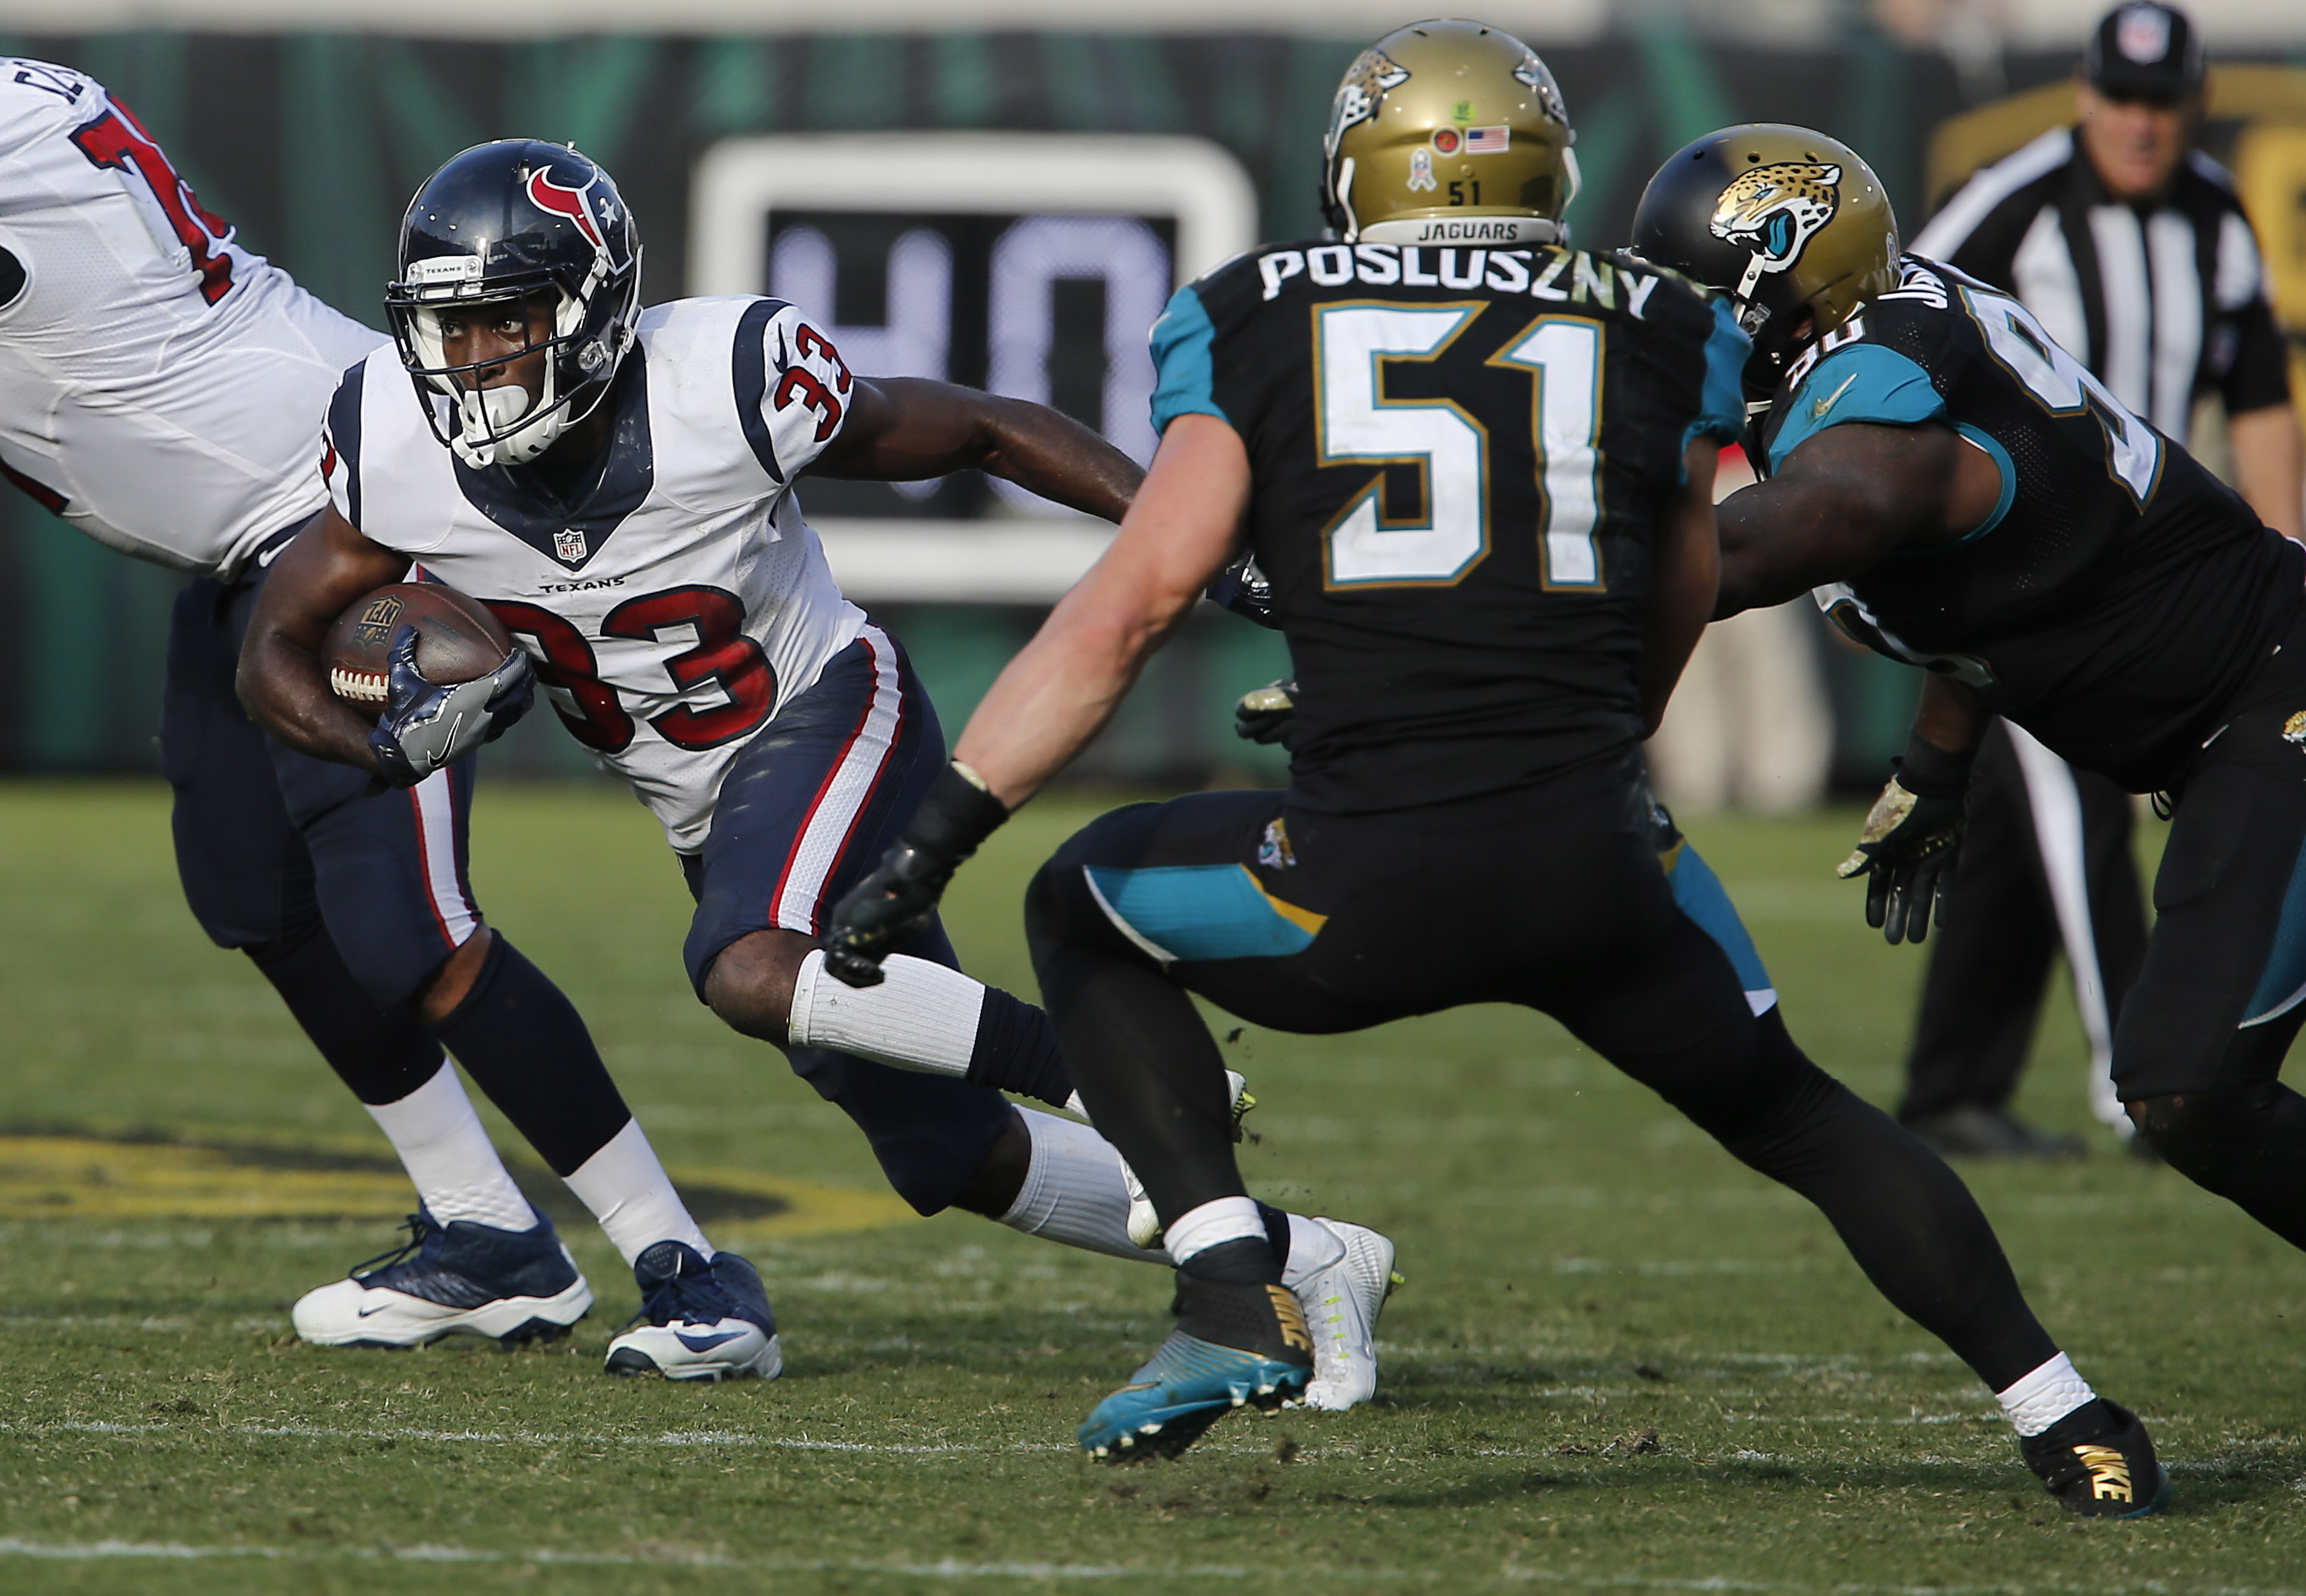 9674818-nfl-houston-texans-at-jacksonville-jaguars